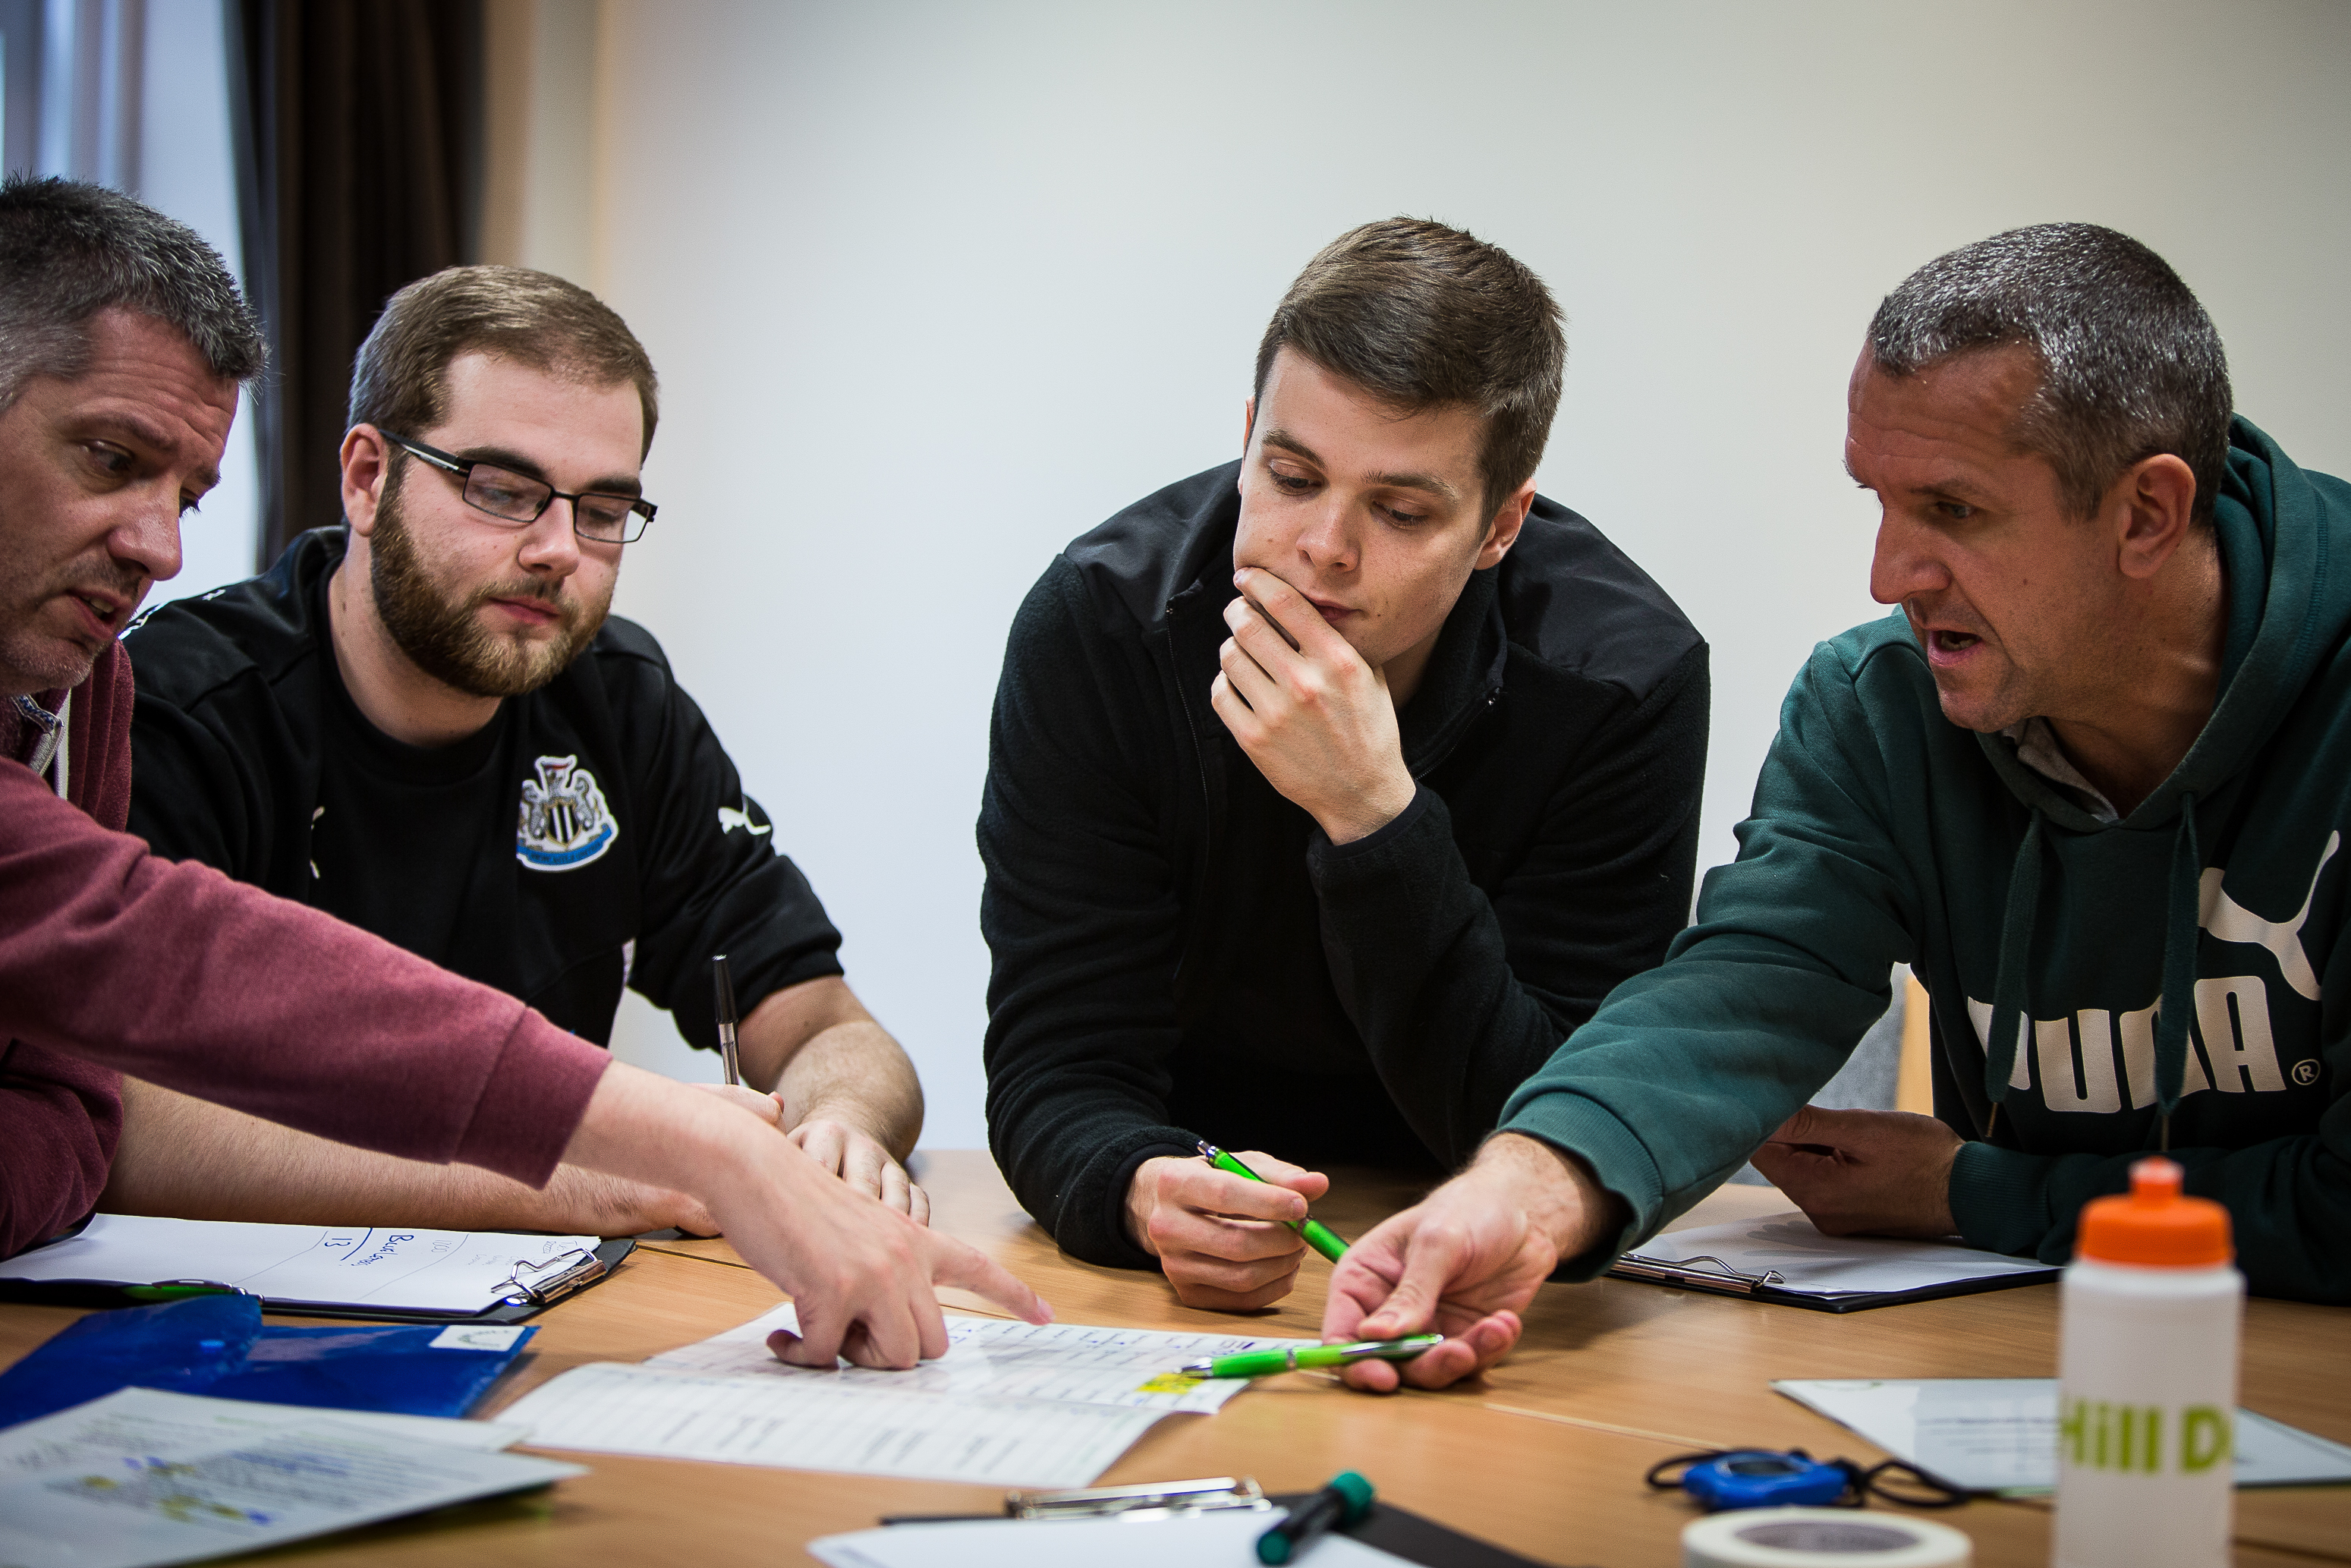 Management team planning for a development training exercise